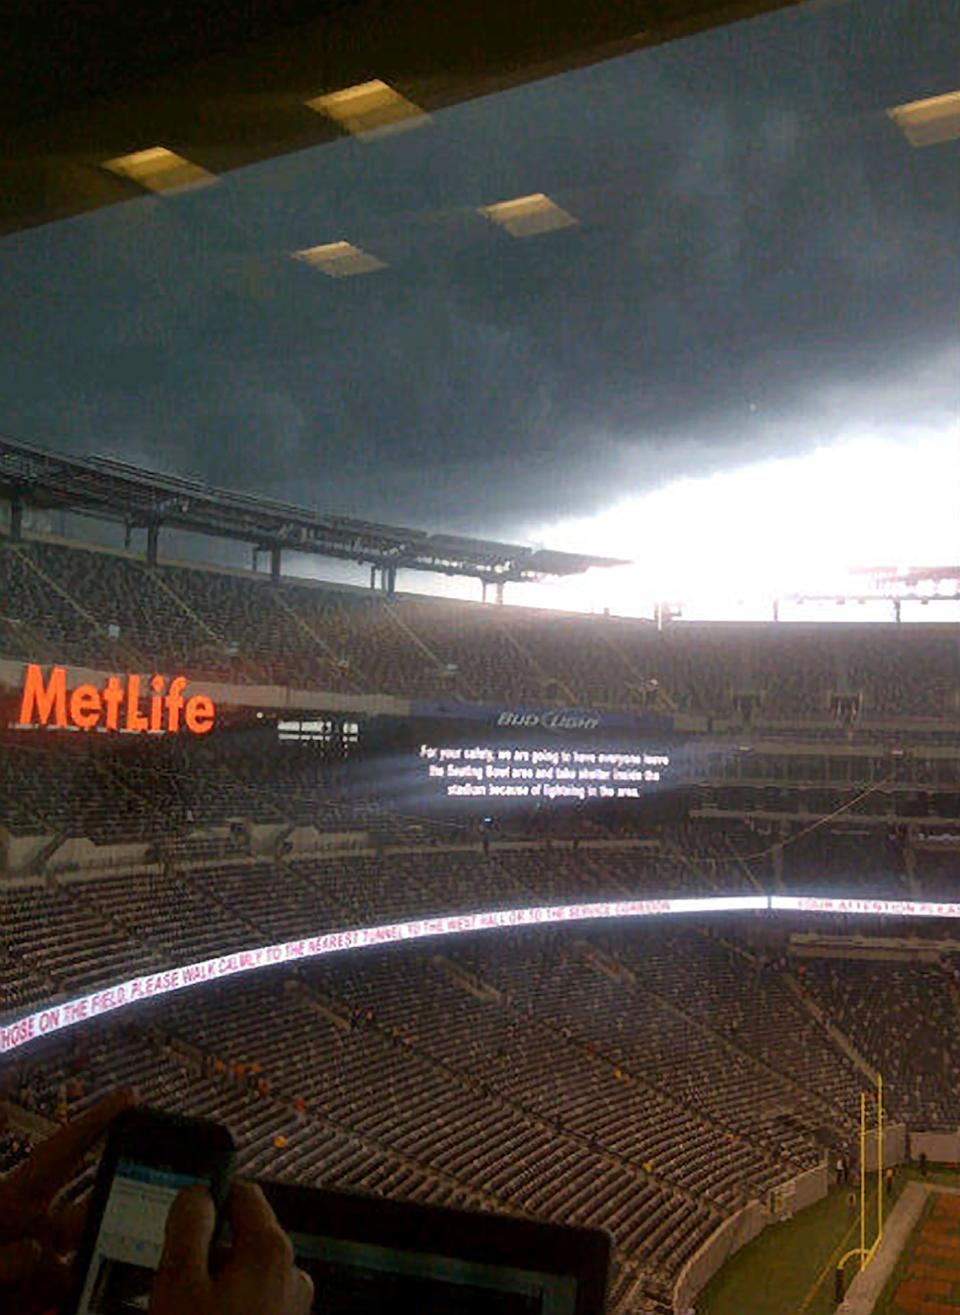 Storm clouds loom over MetLife Stadium, Saturday, Sept. 8, 2012, in East Rutherford, N.J., during an NCAA college football game between Southern California and Syracuse. Because of the hard rain and winds, the game was halted for more than an hour. (AP Photo/Ralph D. Russo)